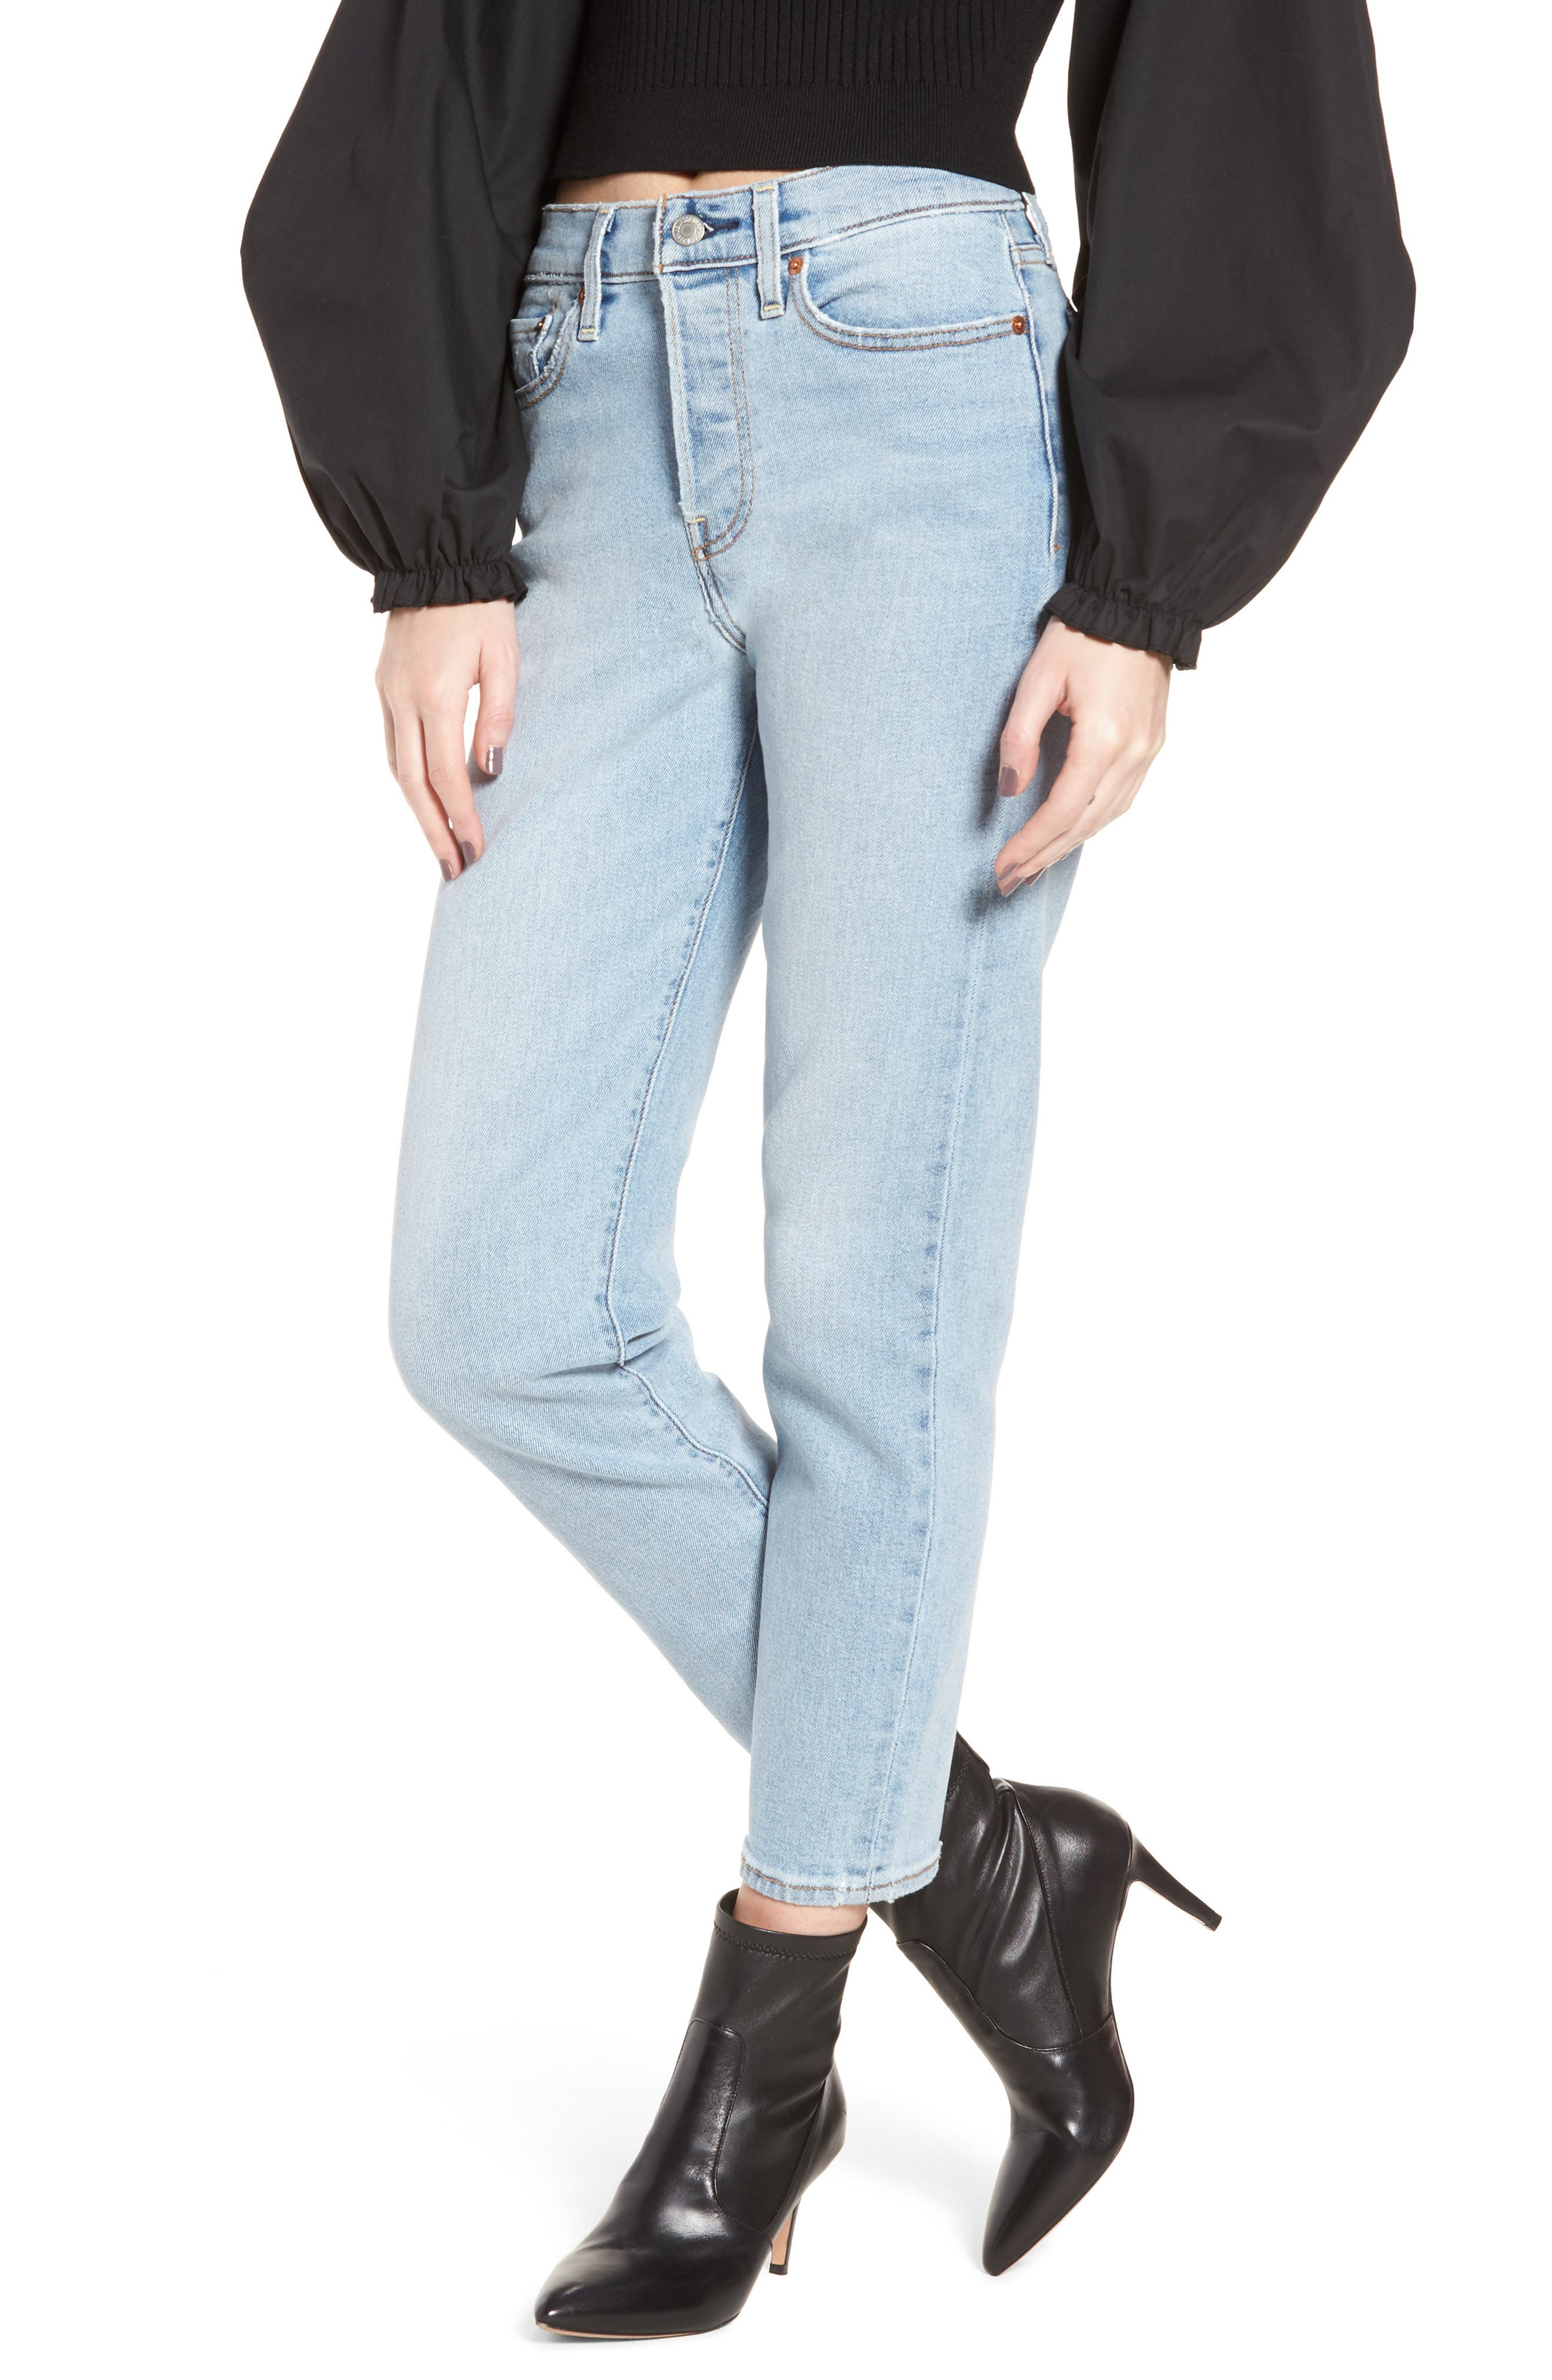 Wedgie Icon Fit High Waist Crop Jeans,                             Main thumbnail 1, color,                             BAUHAUS BLUES